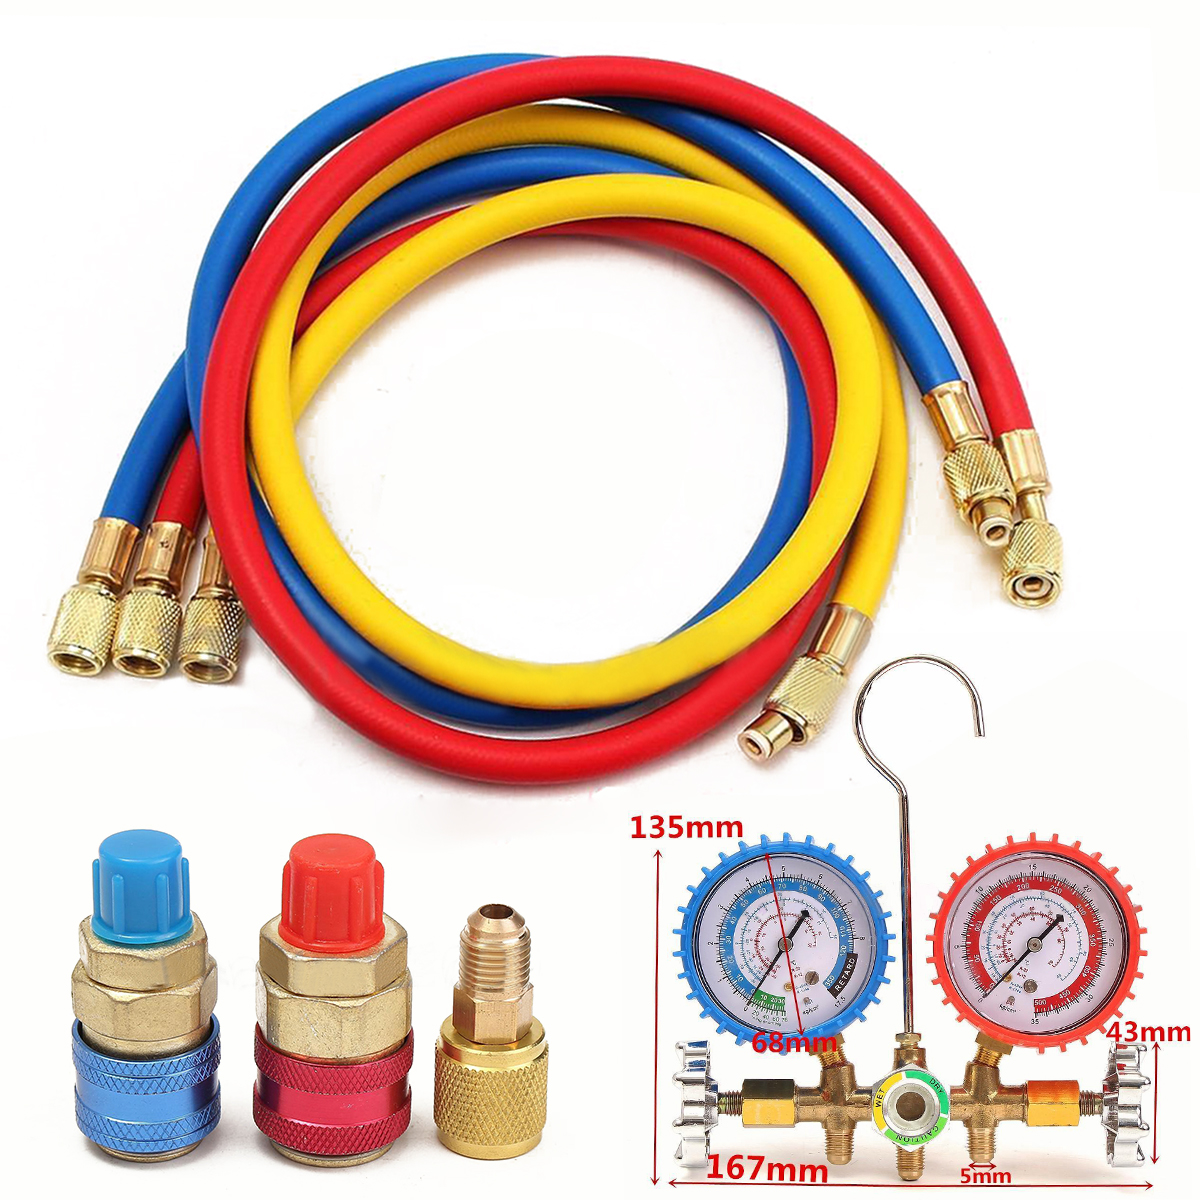 High Pressure Refrigerant Manifold Gauge R134a R12 R22 R502 HVAC A/C Charging Hose 90cm with Quick Couplers Mayitr r134a r12 r22 r404a a c manifold gauge set with hose for household automobile a c air conditioning